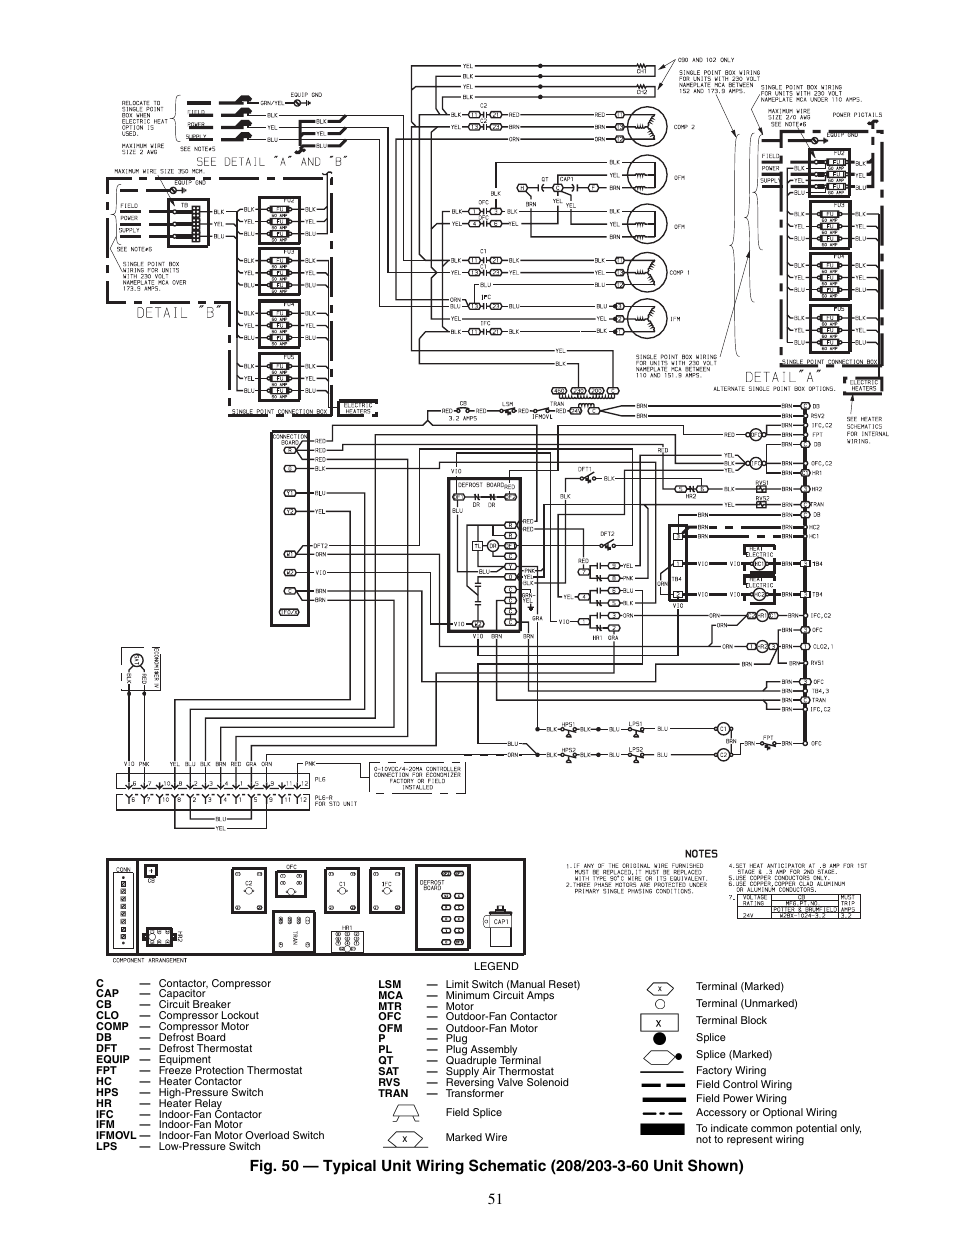 carrier clo board wiring diagram 32 wiring diagram images wiring diagrams  carrier wiring diagrams 59sc5a100s21-20 carrier wiring diagrams air  conditioner